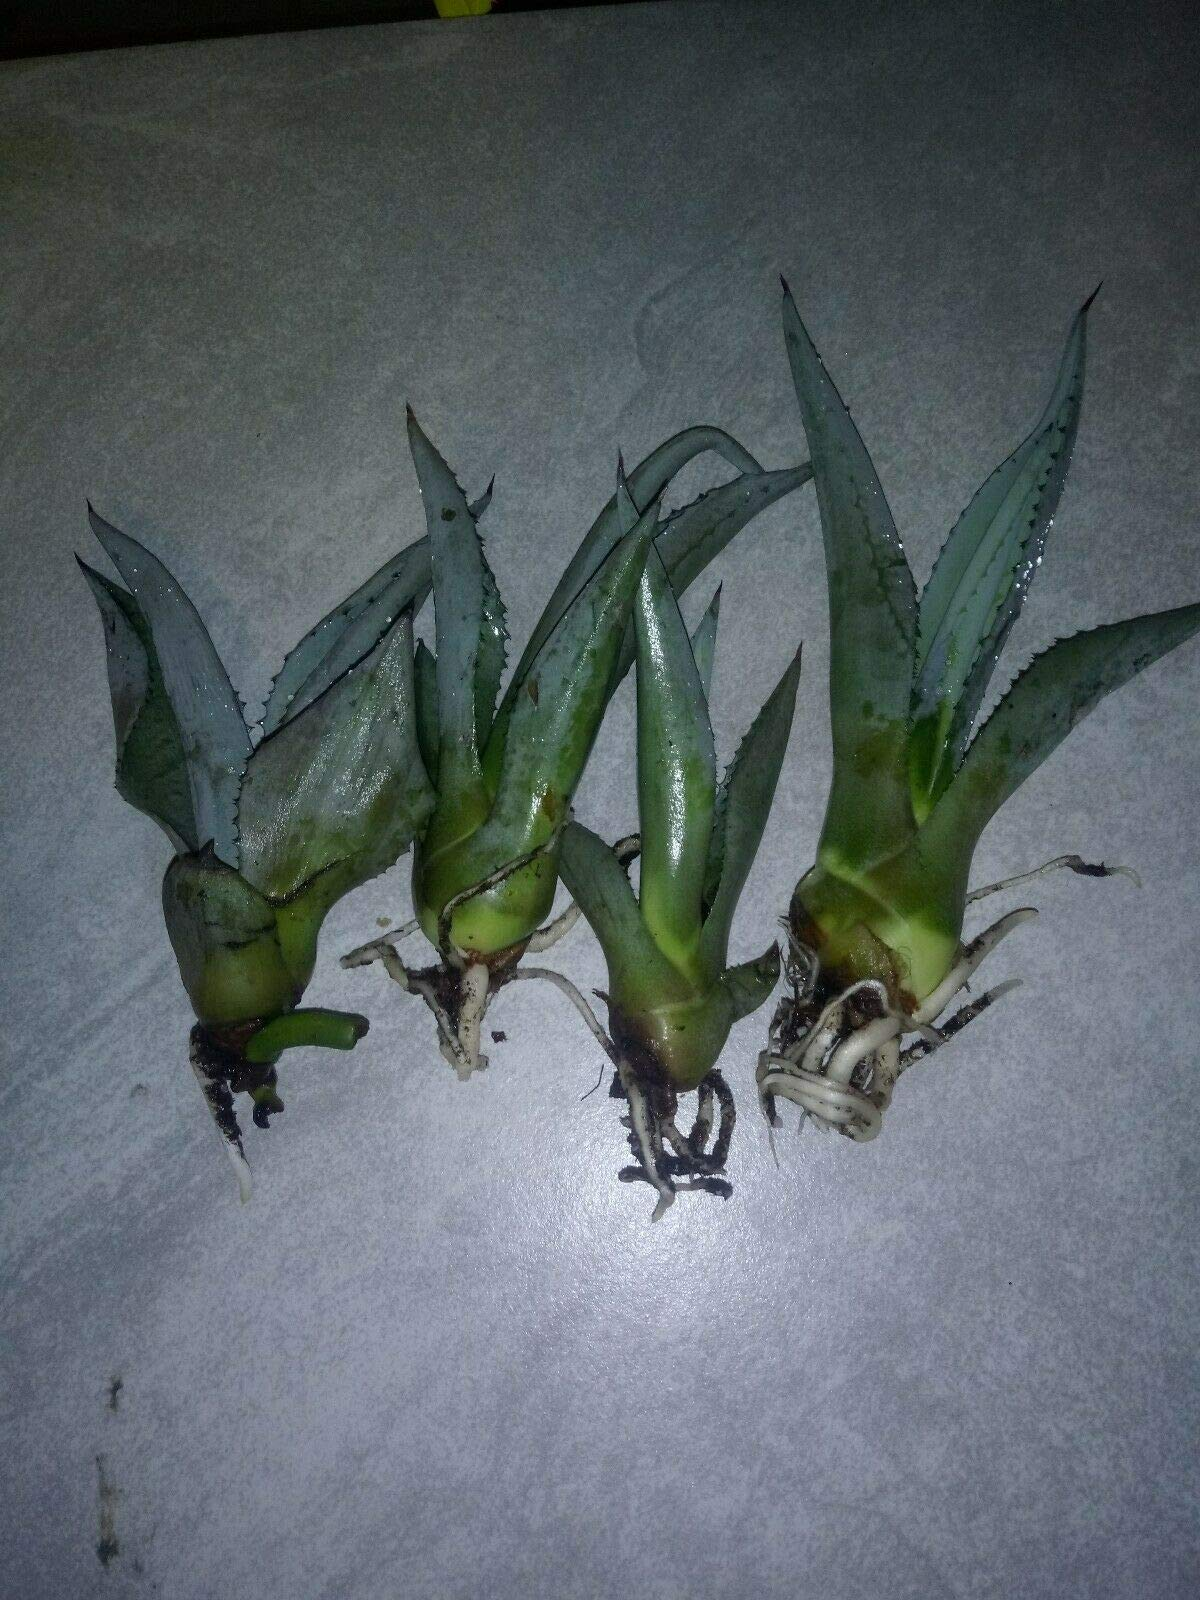 3 Live Agave Tequilana, Blue or Tequila Live Plant WCRF8